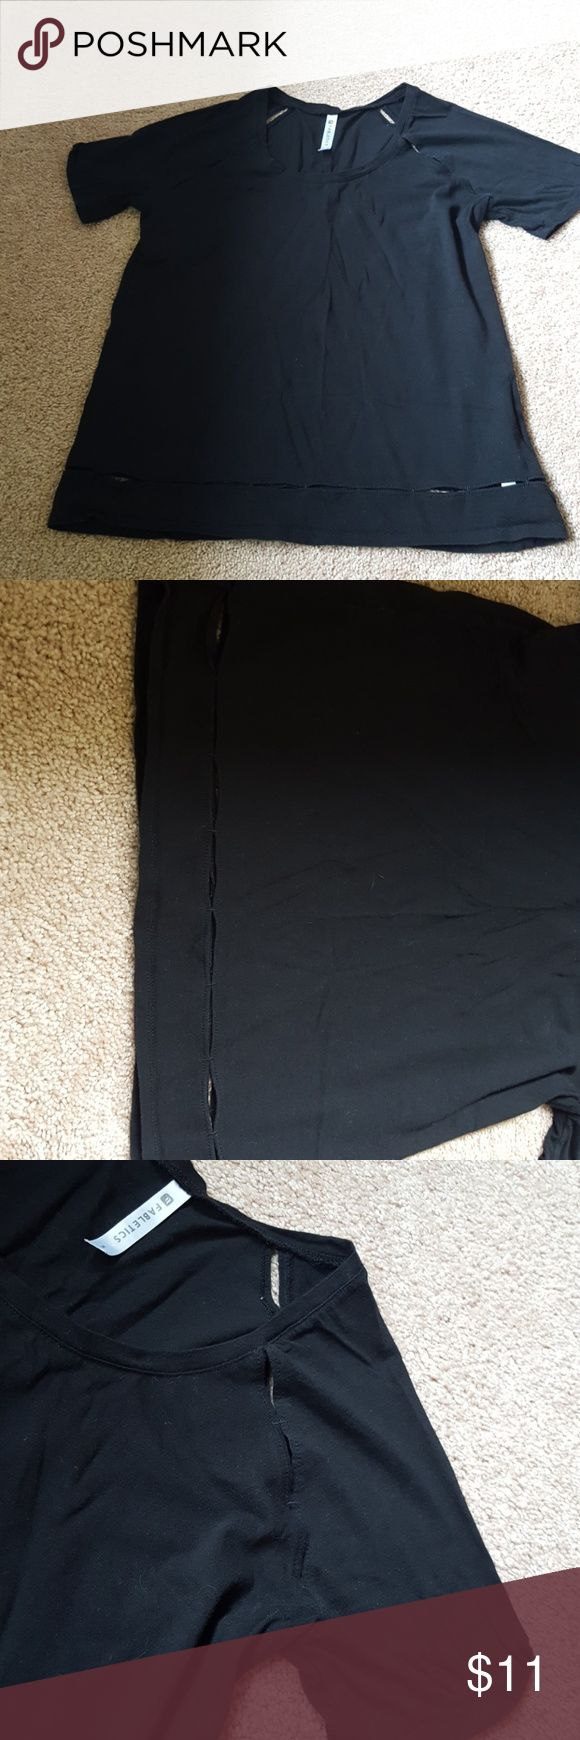 Sz. S fabletics black vented workout shirt This is made of a lightweight cotton material that breathes well while you work out. It has  a vented,  open hole design around the bottom of the shirt and around the arms. There are closer pictures shown above. It was only worn one or two times and is in very good used condition from a smoke-free home. Fabletics Tops